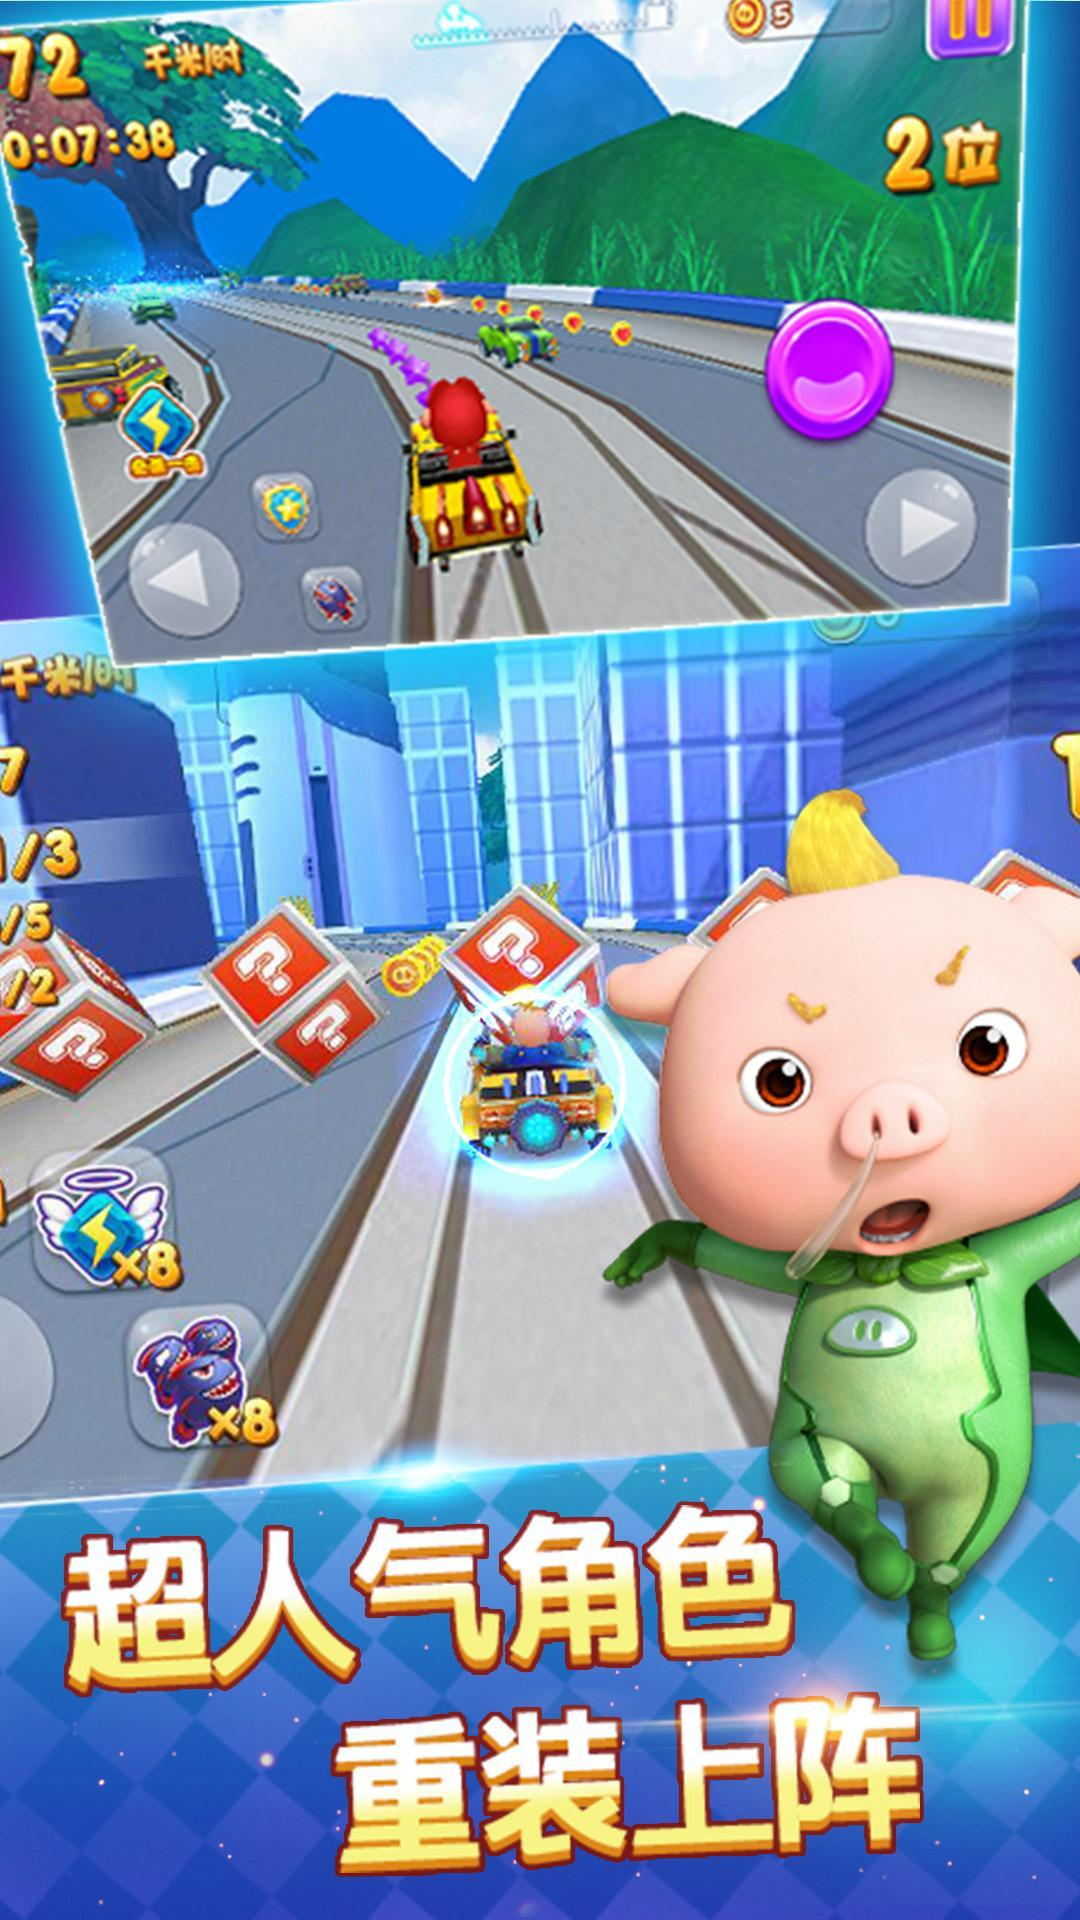 Kart Racer - GG Bond Hill Racing for Android - APK Download